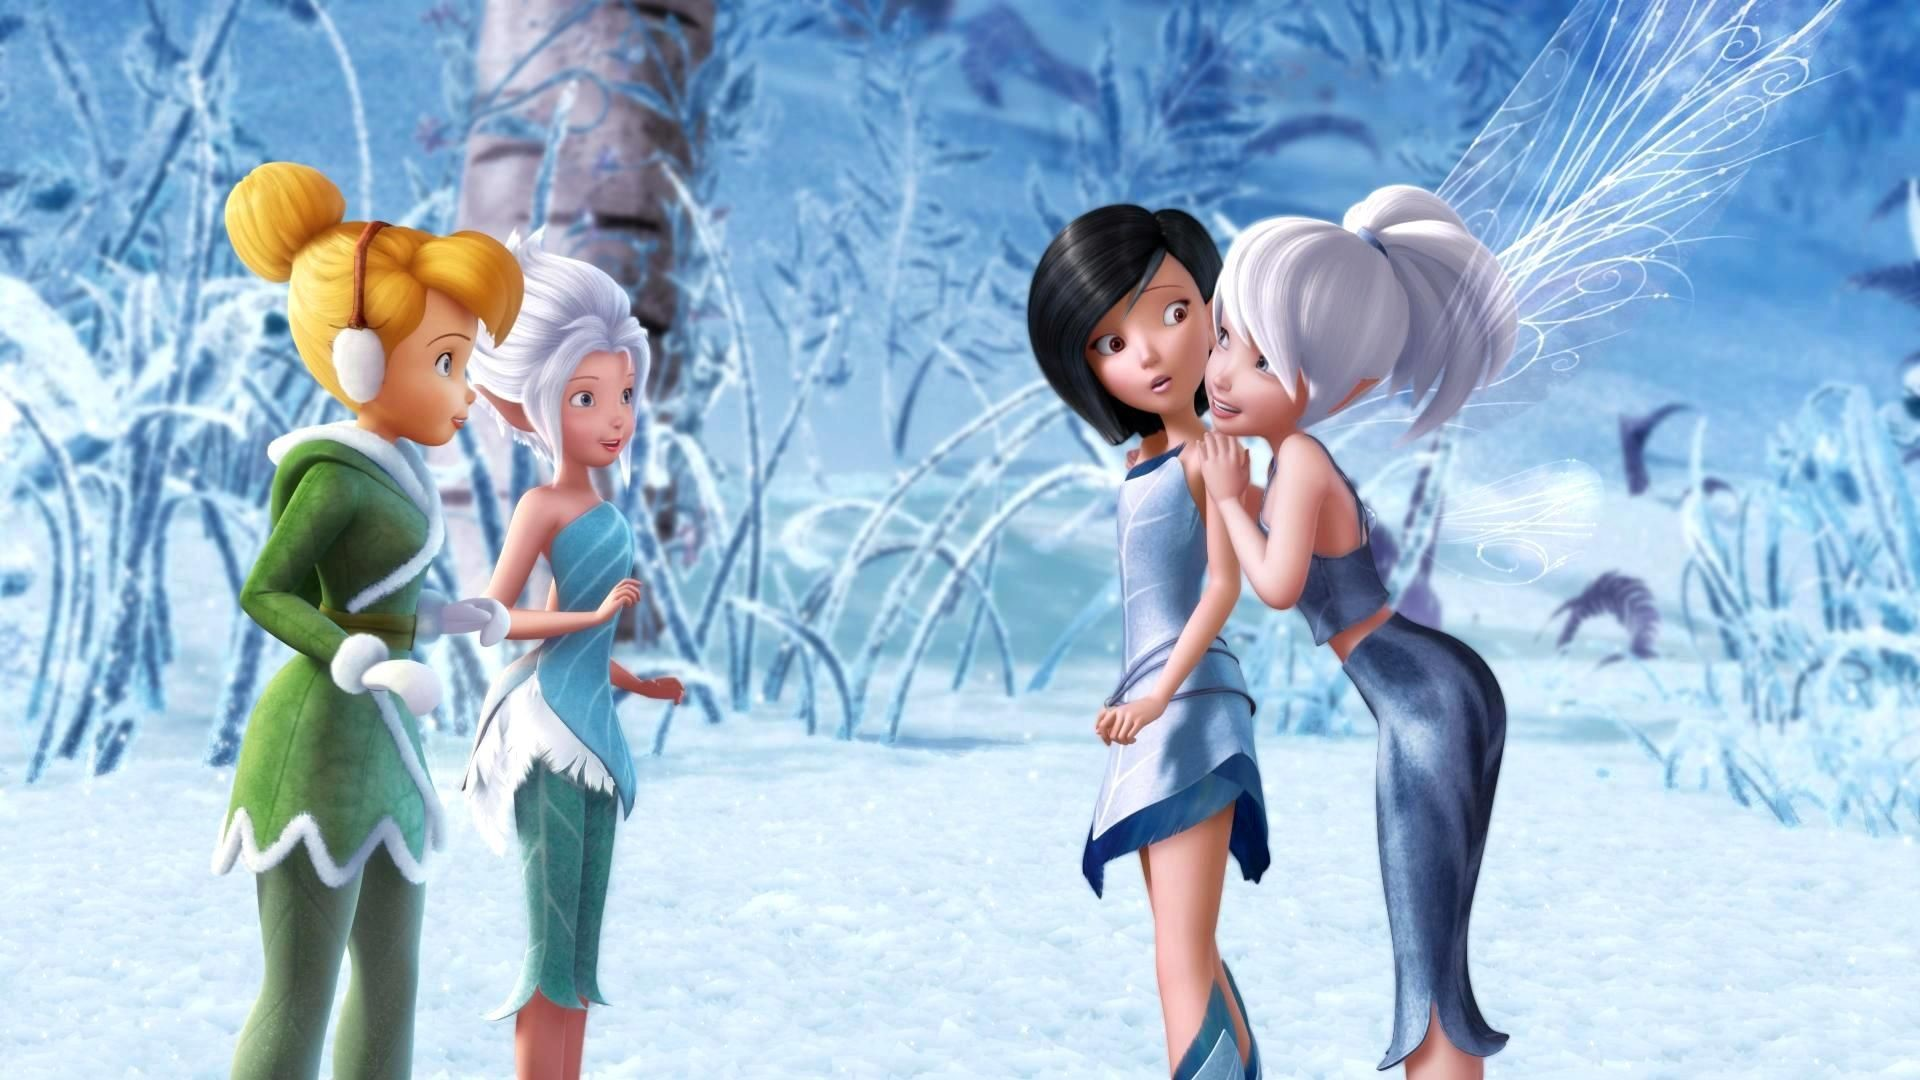 Res: 1920x1080, TinkerBell-Secret-Of-The-Wings-t